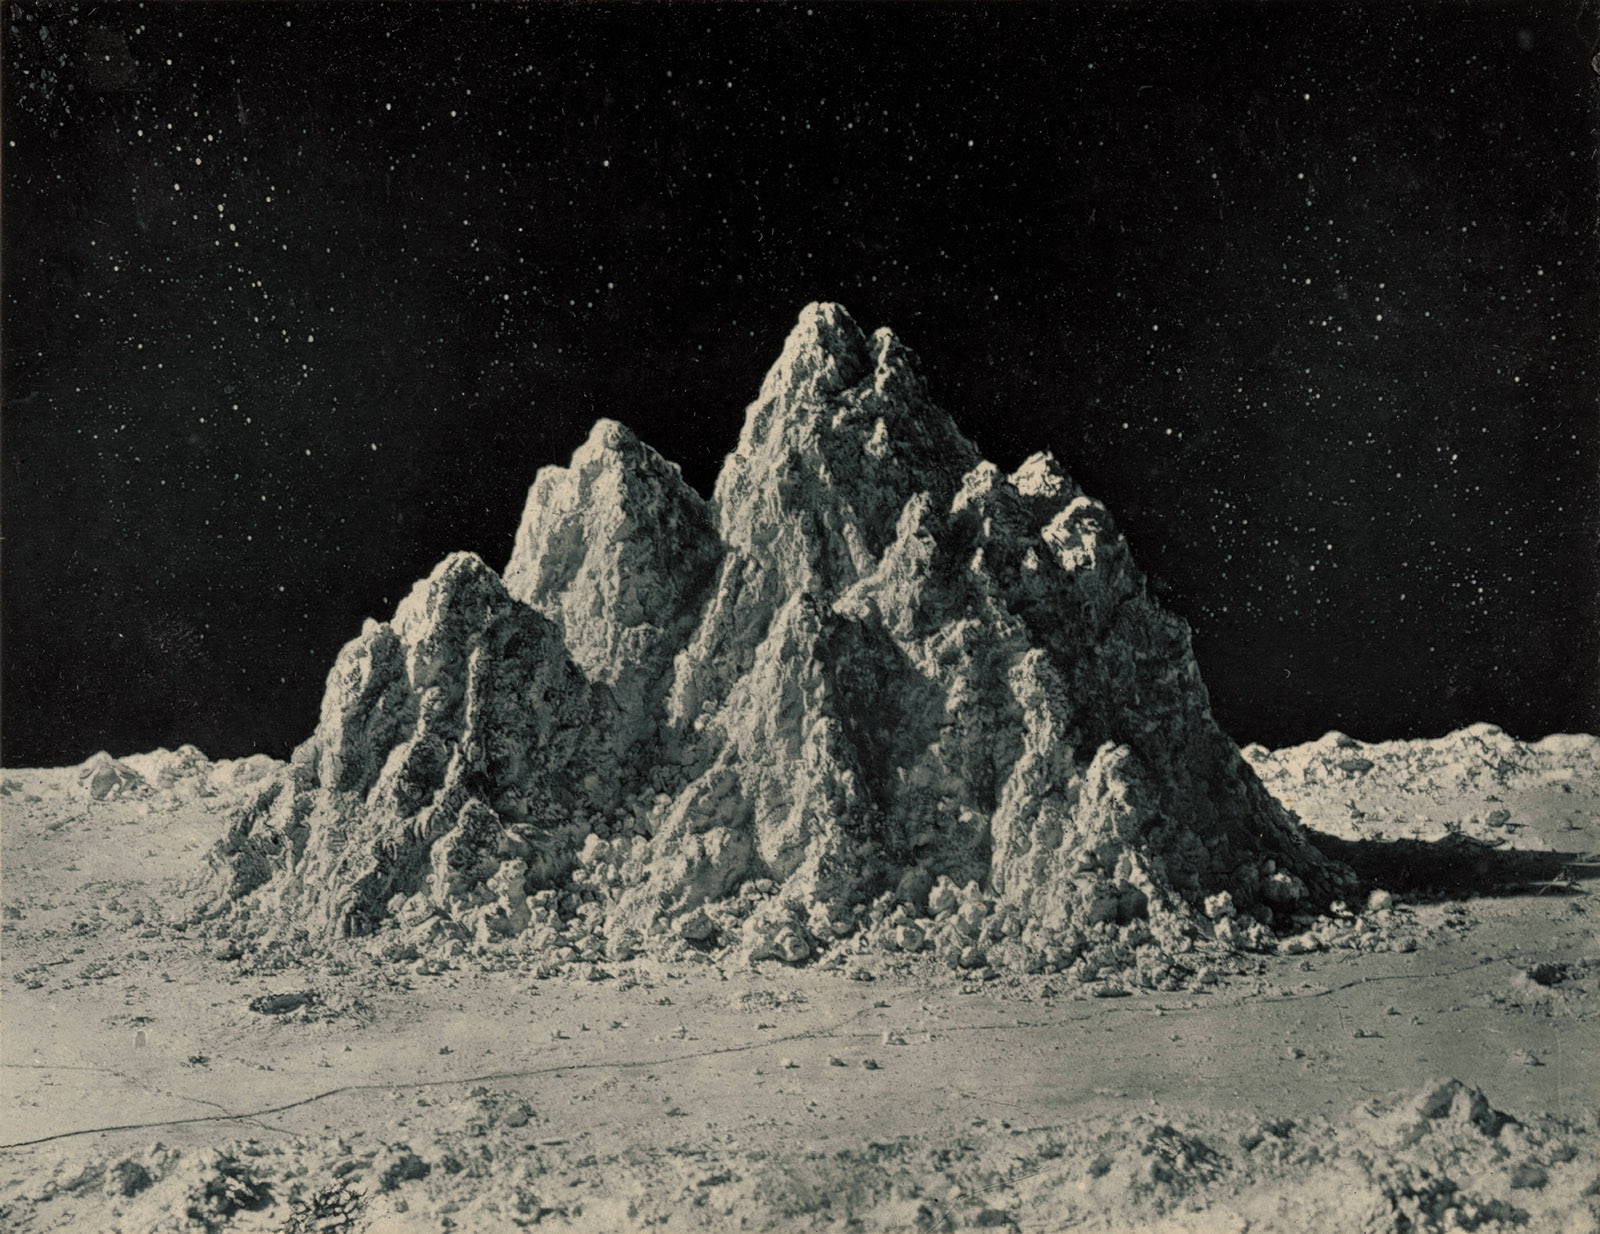 Clay model of the lunar landscape by James Nasmyth